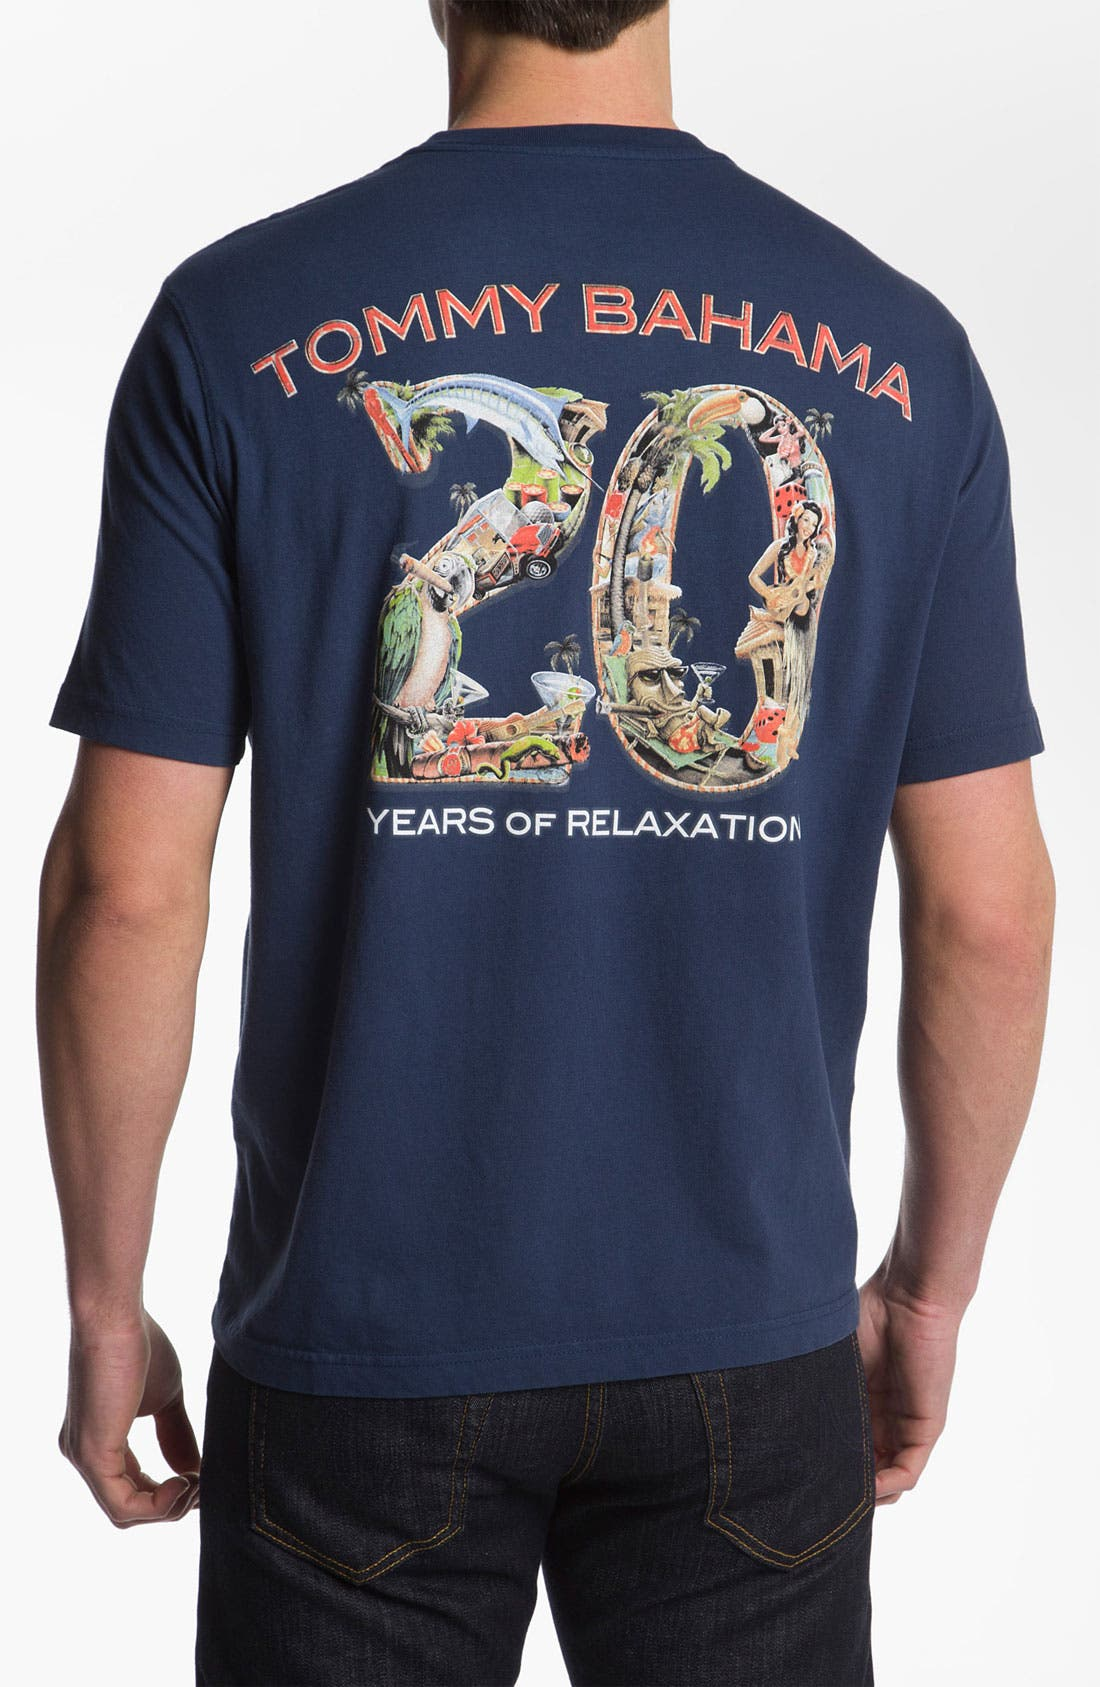 Main Image - Tommy Bahama '20 Years of Relaxation' Cotton T-Shirt